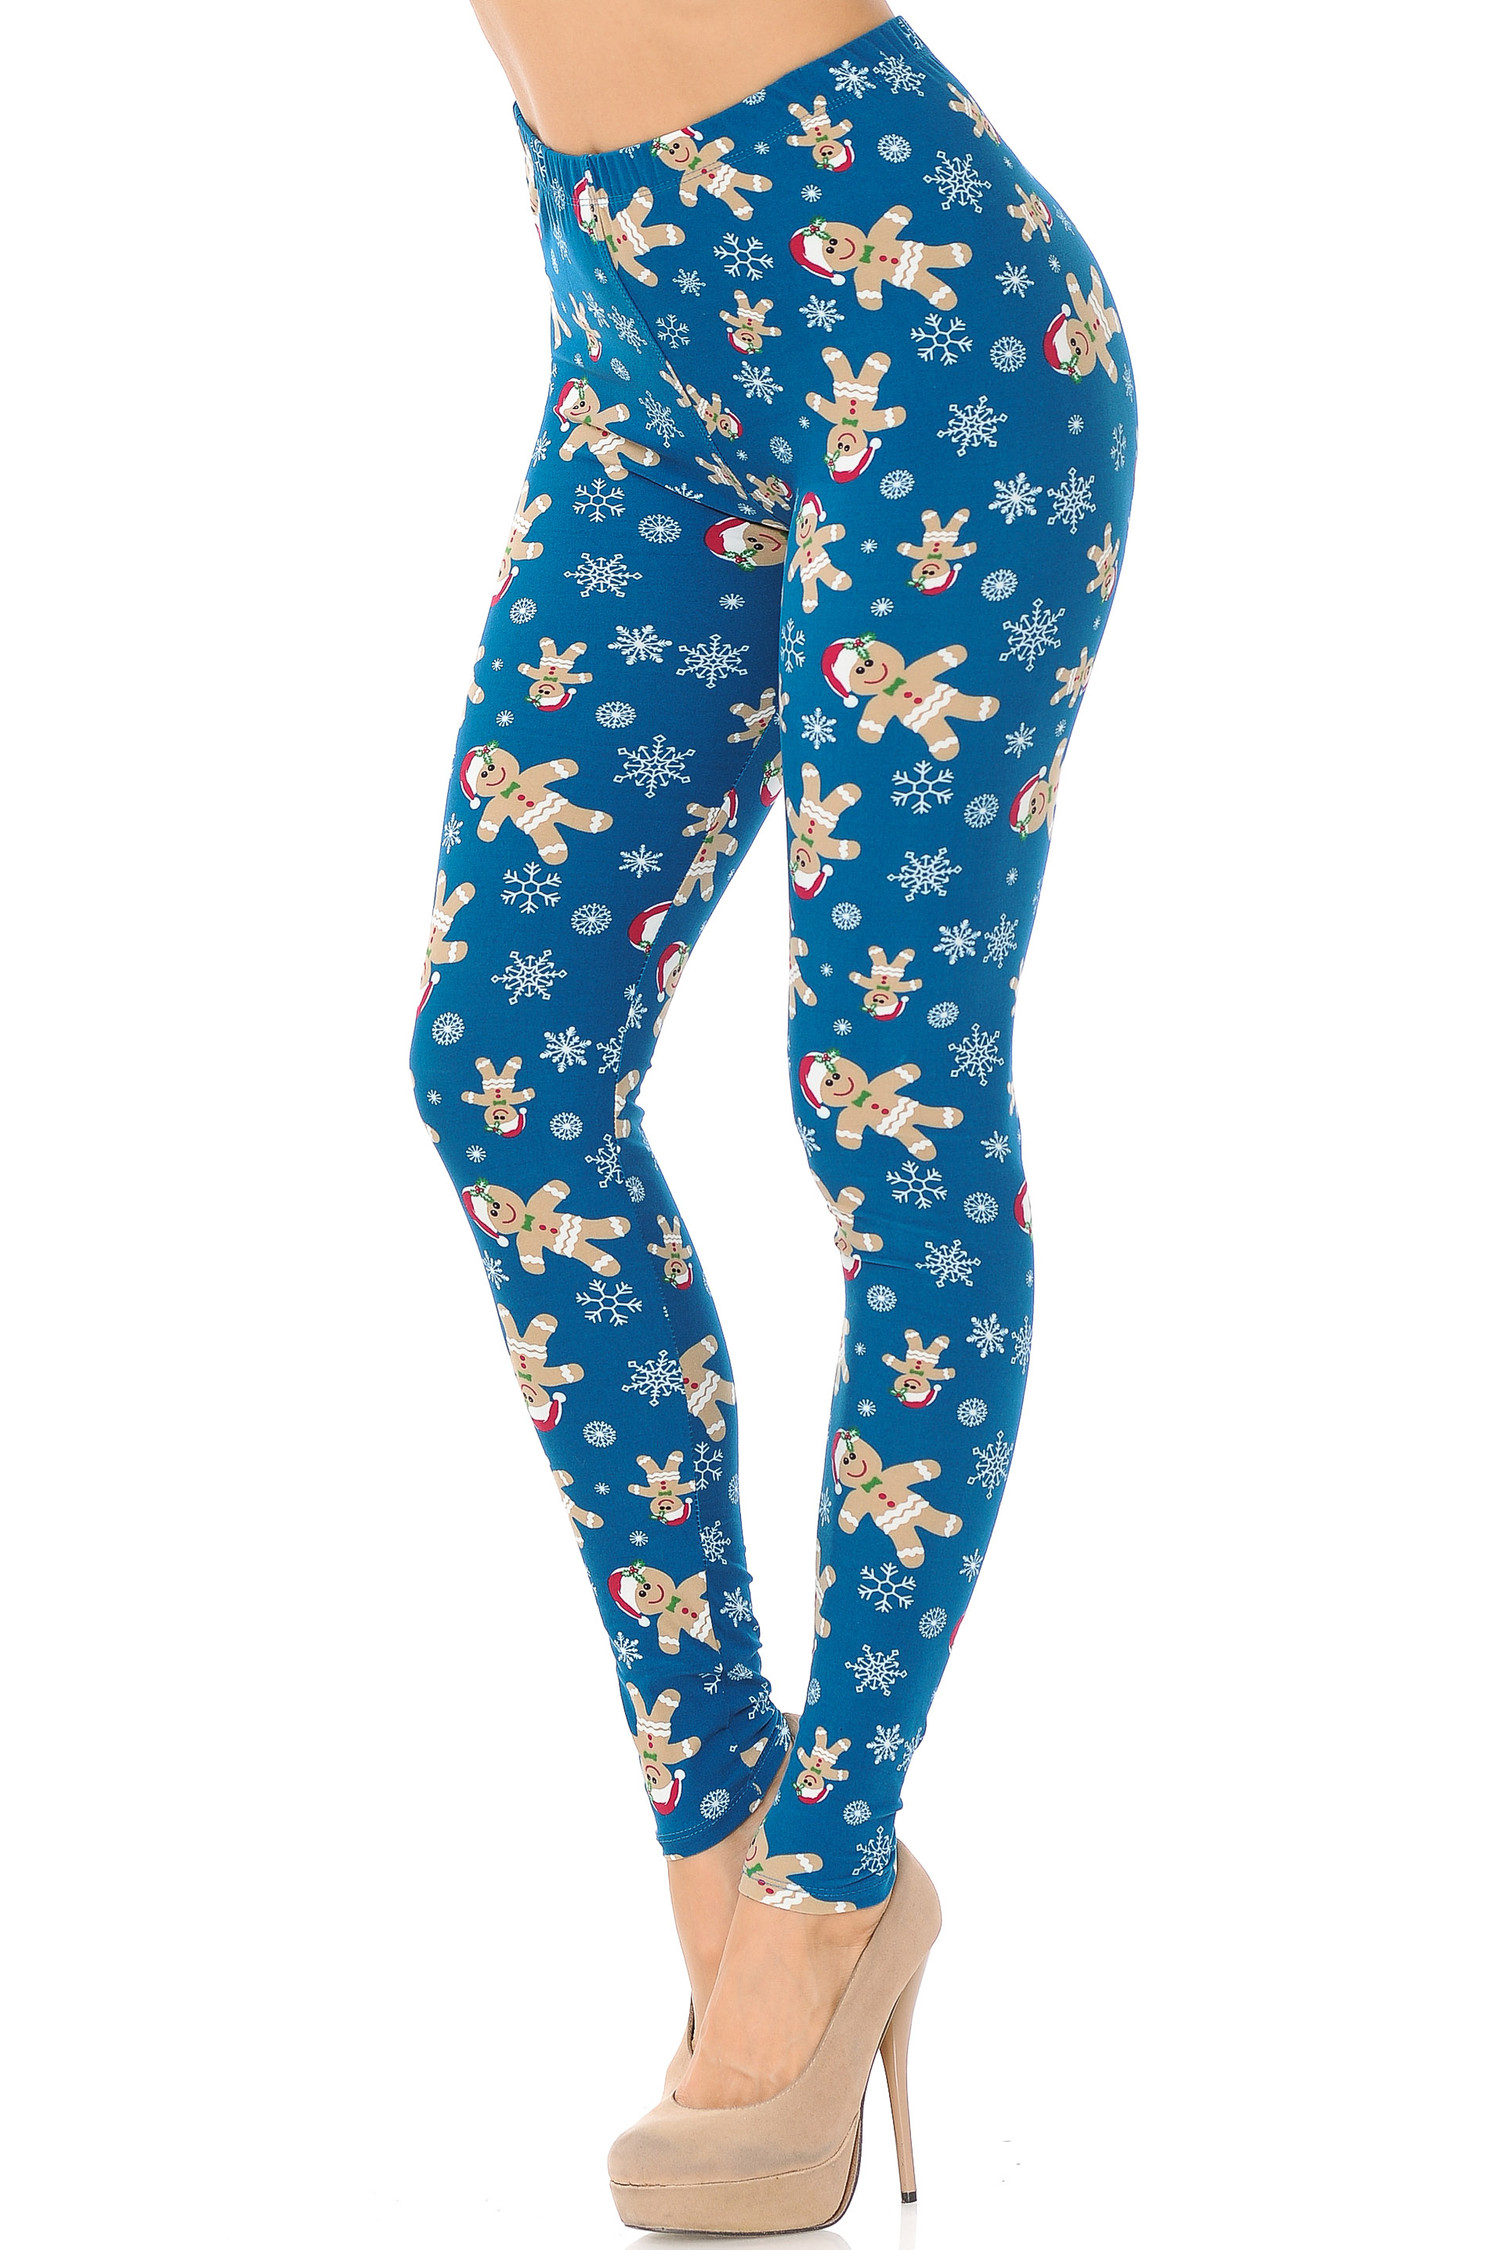 Brushed Christmas Cookies and Snowflakes Plus Size Leggings